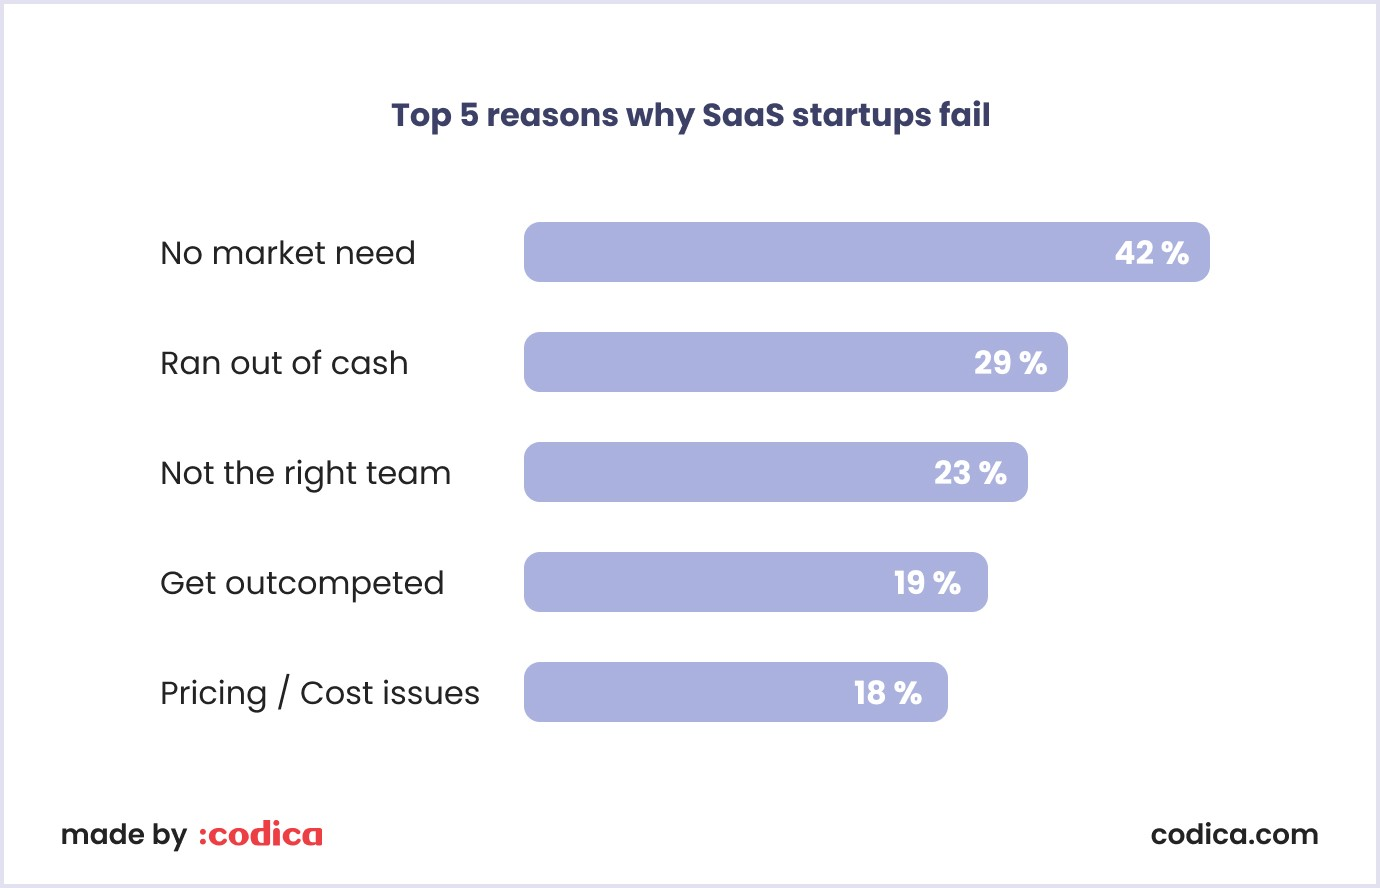 Top 5 reasons why SaaS startups fail by CBI Insights